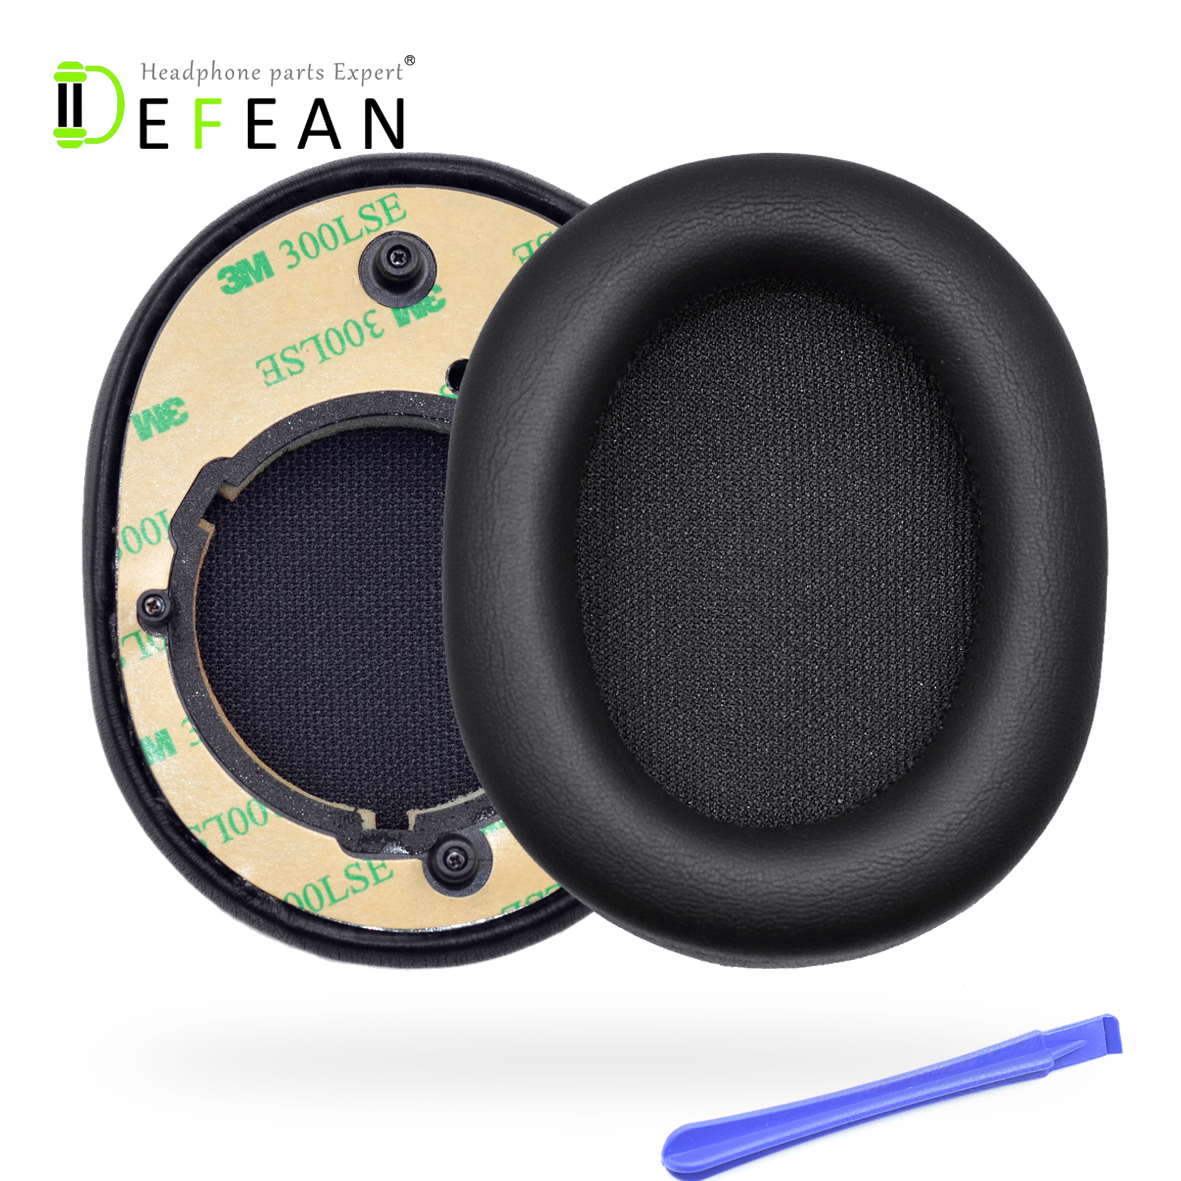 Defean Replacement Black Ear Pads Cushion covers For AKG N90Q N 90 Noise Cancelling Headphone